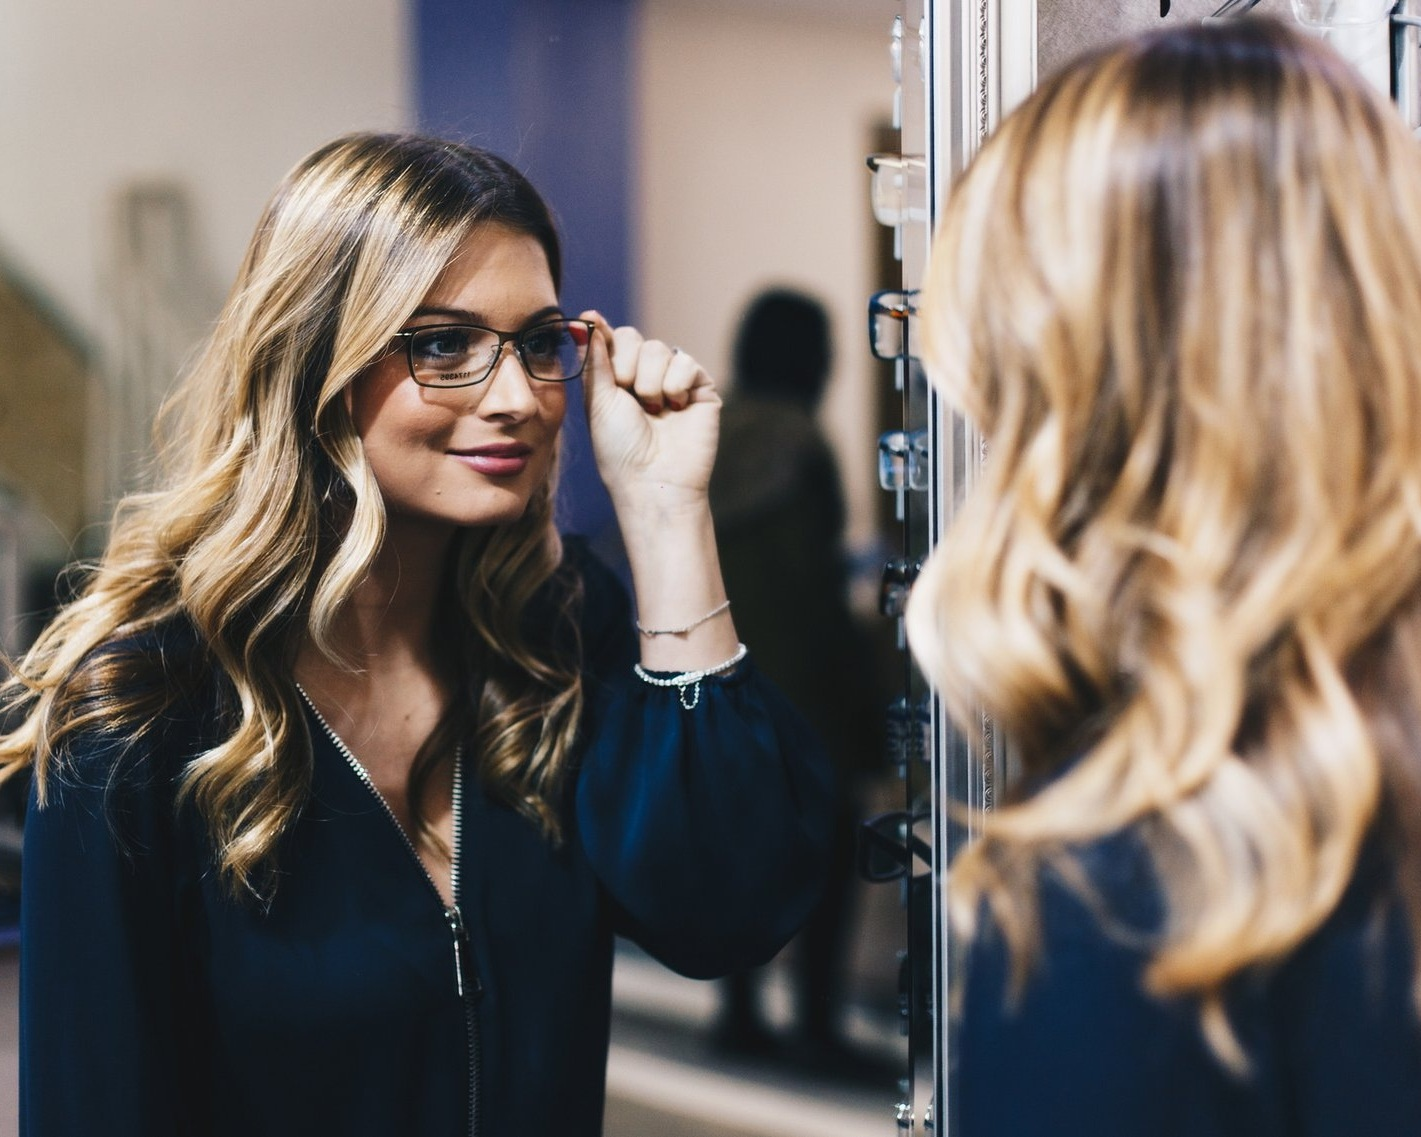 Huge choice of brands. - Browse at your leisure over 1300 pieces of the worlds finest eyewear brands from Lindberg and Silhouette to Prada and Ray-Ban. View our full range of brands here.